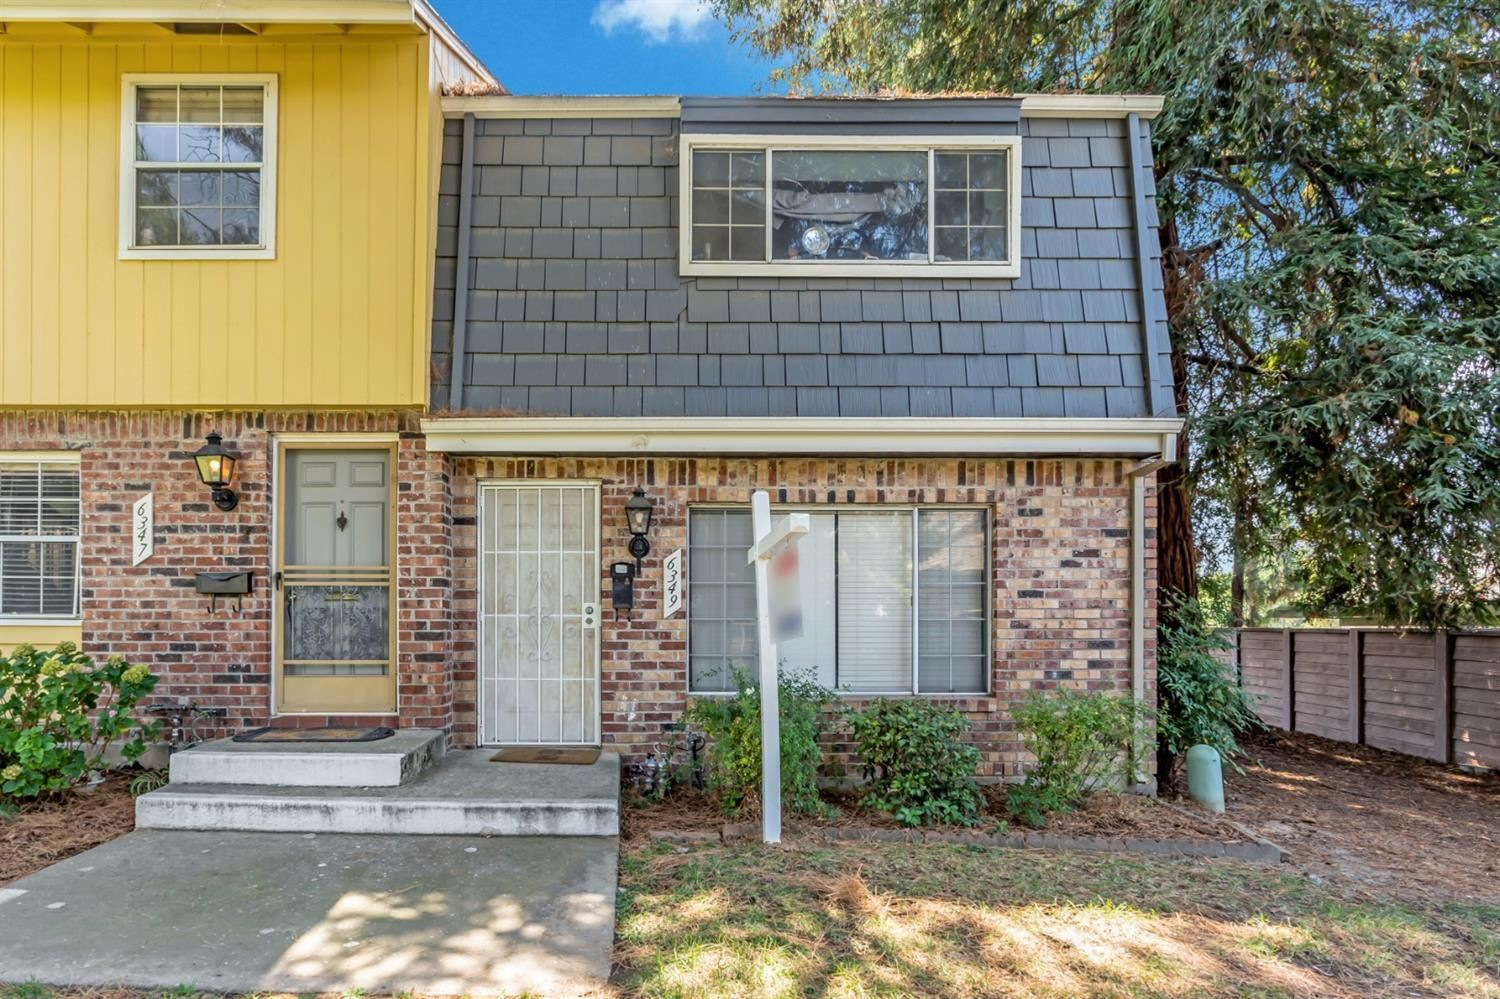 6349 Wexford Circle, Citrus Heights, CA 95621 - MLS#: 221094794